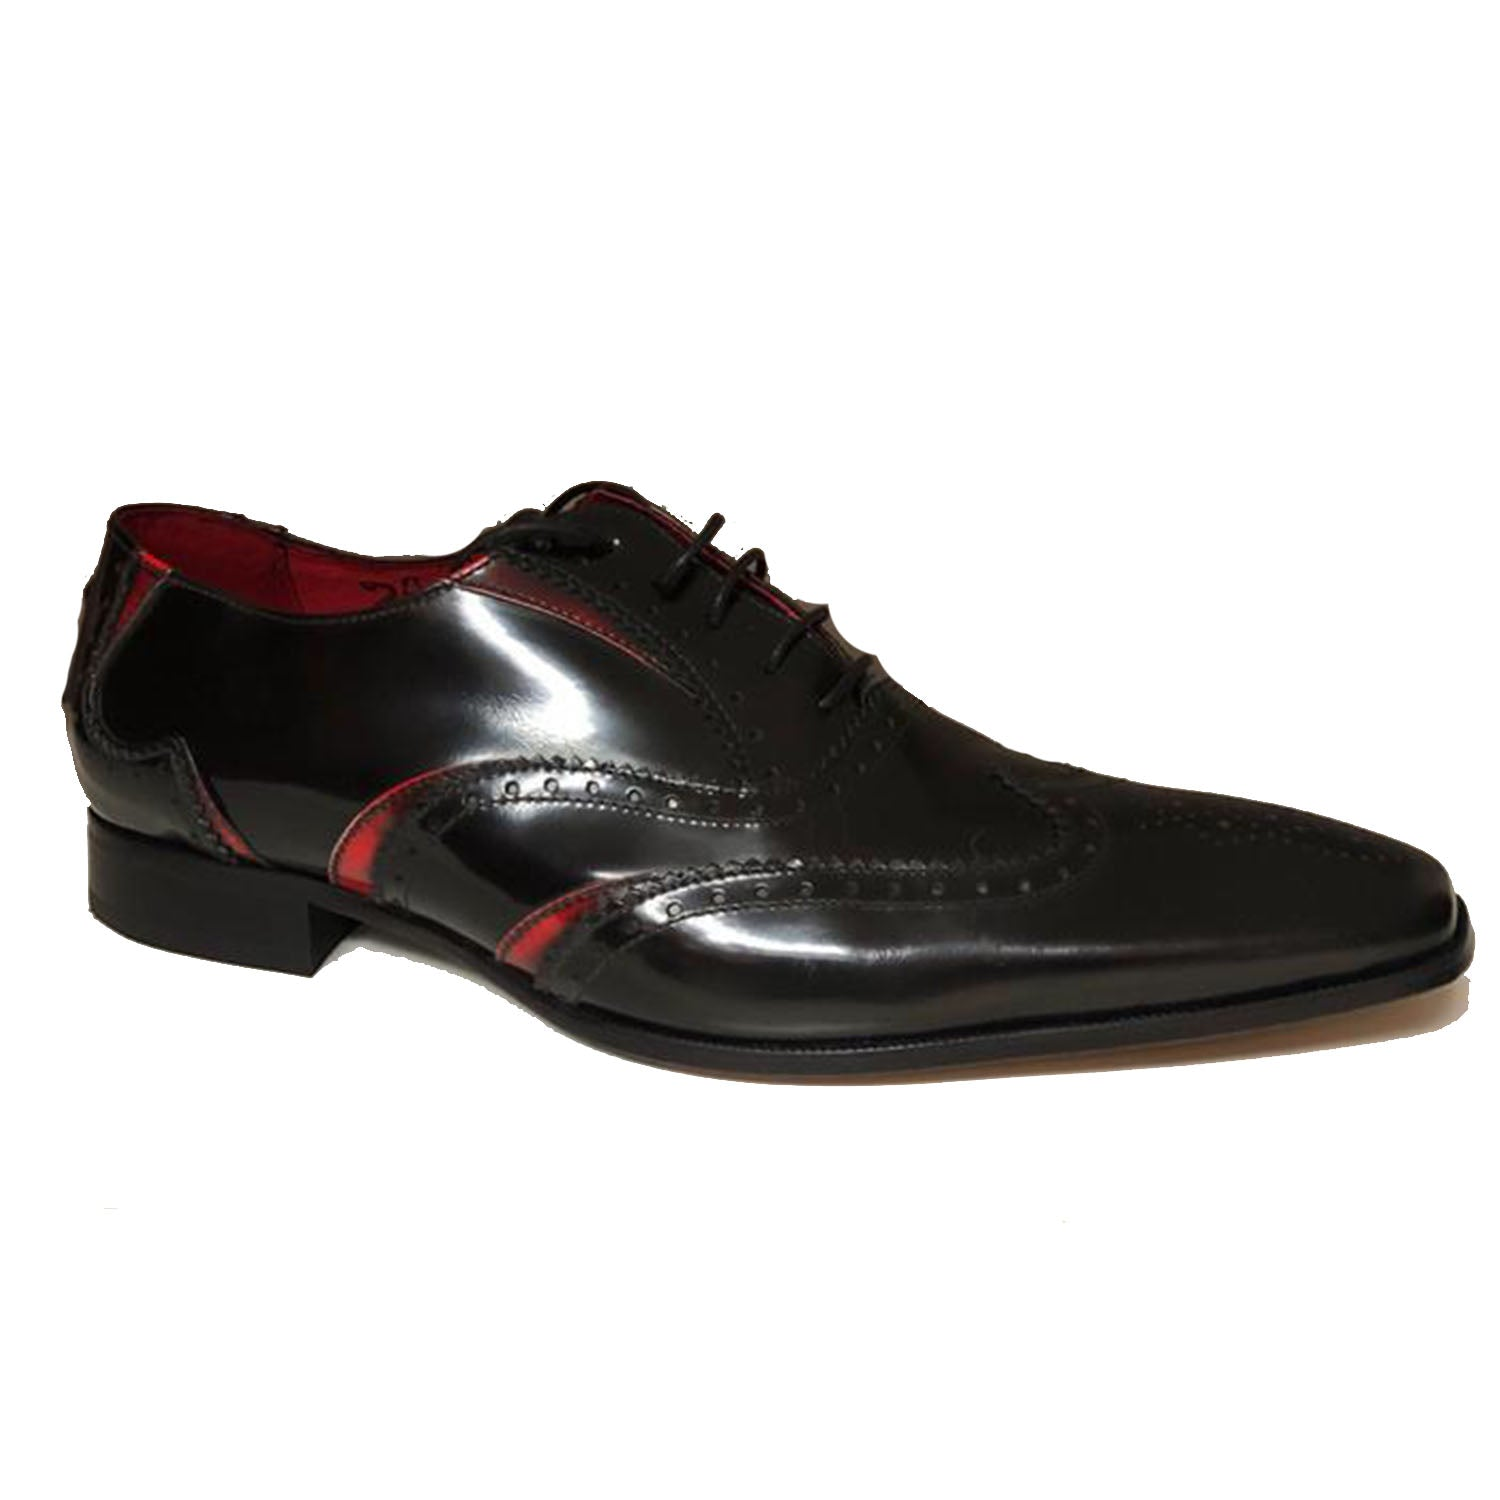 Jeffery West Black Red Lace up Brogue Shoe